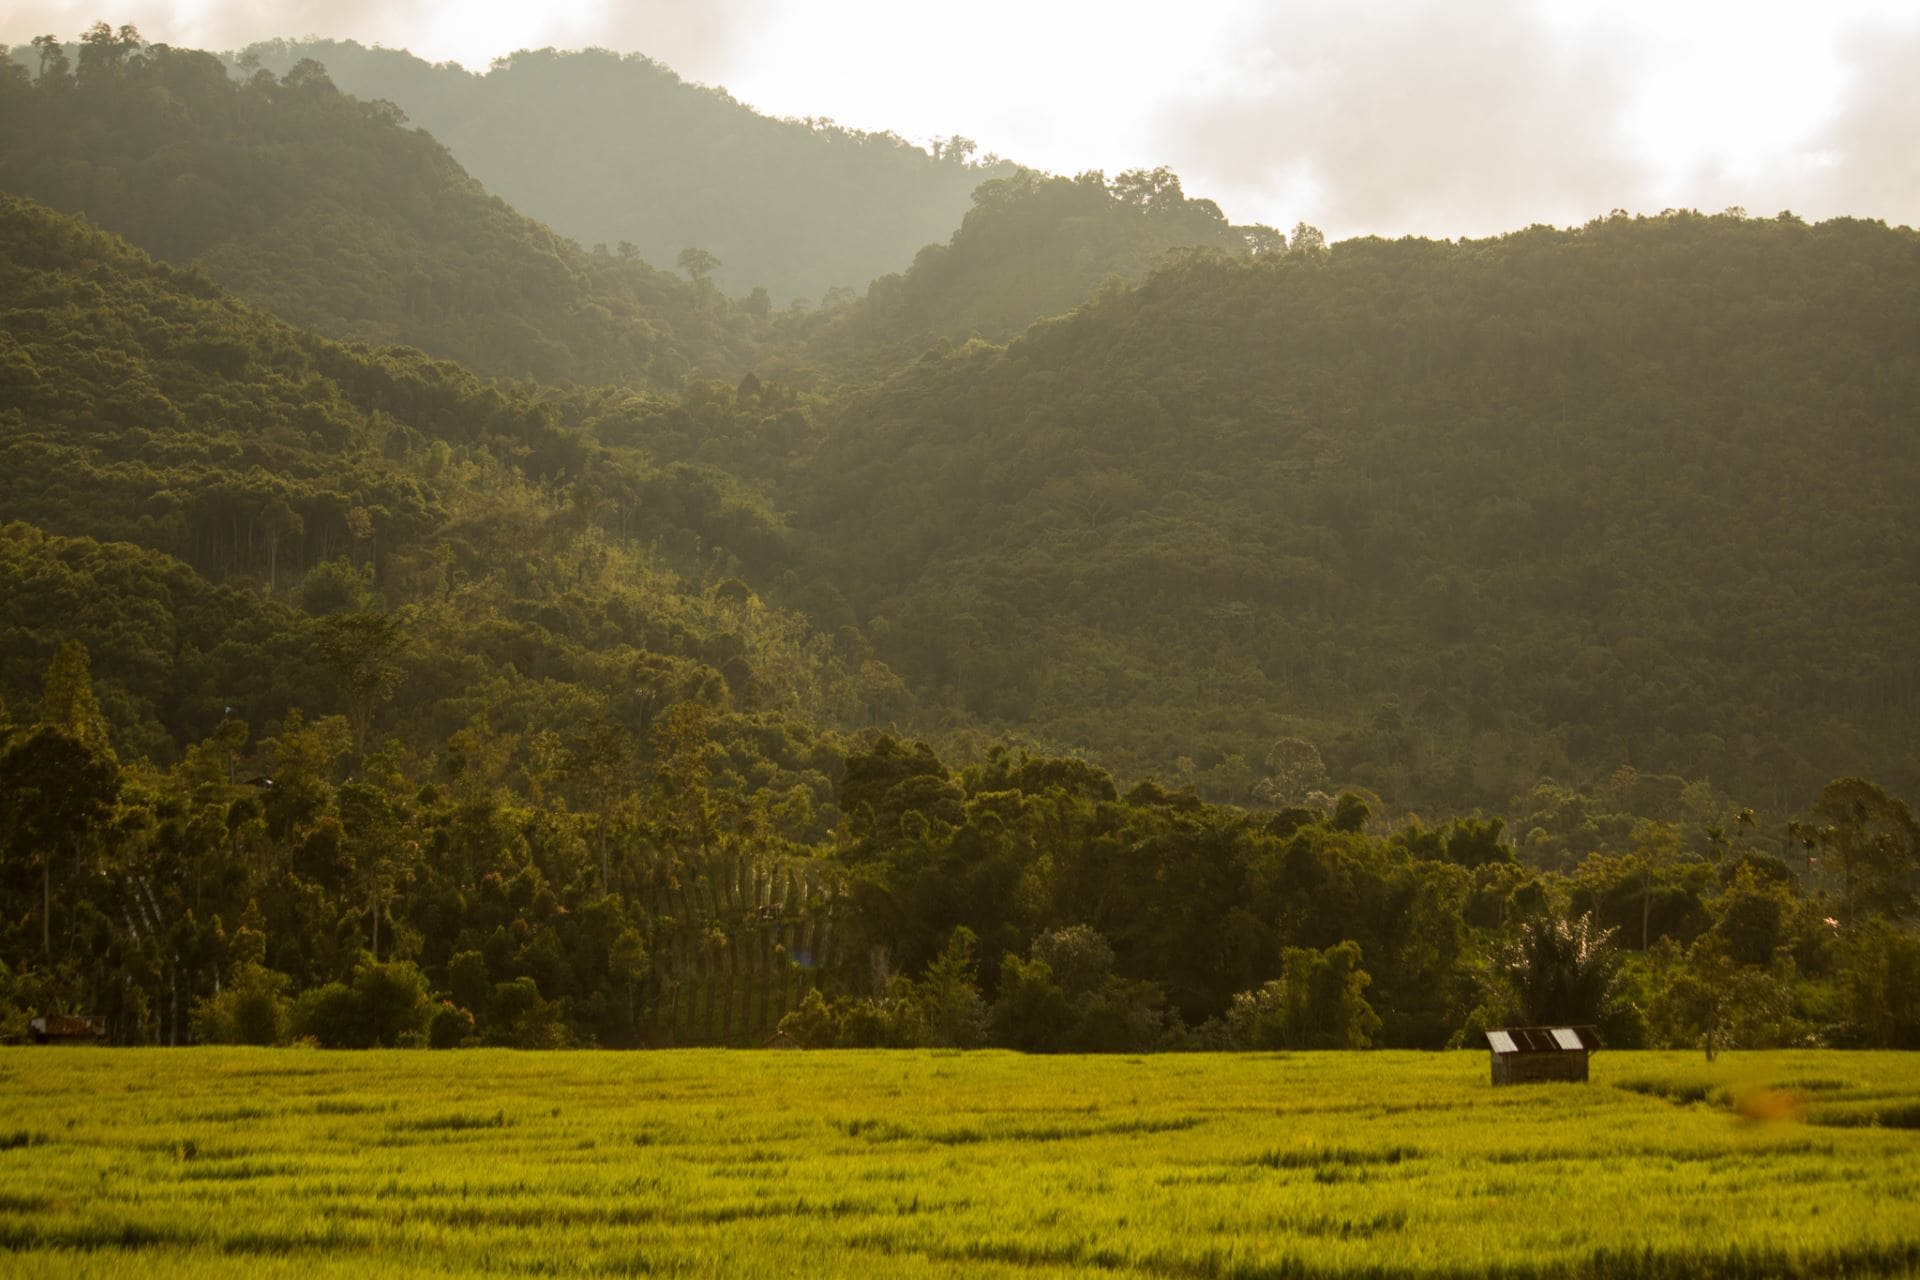 Ricefields on the edge of the rainforest, Lempur, Kerinci.